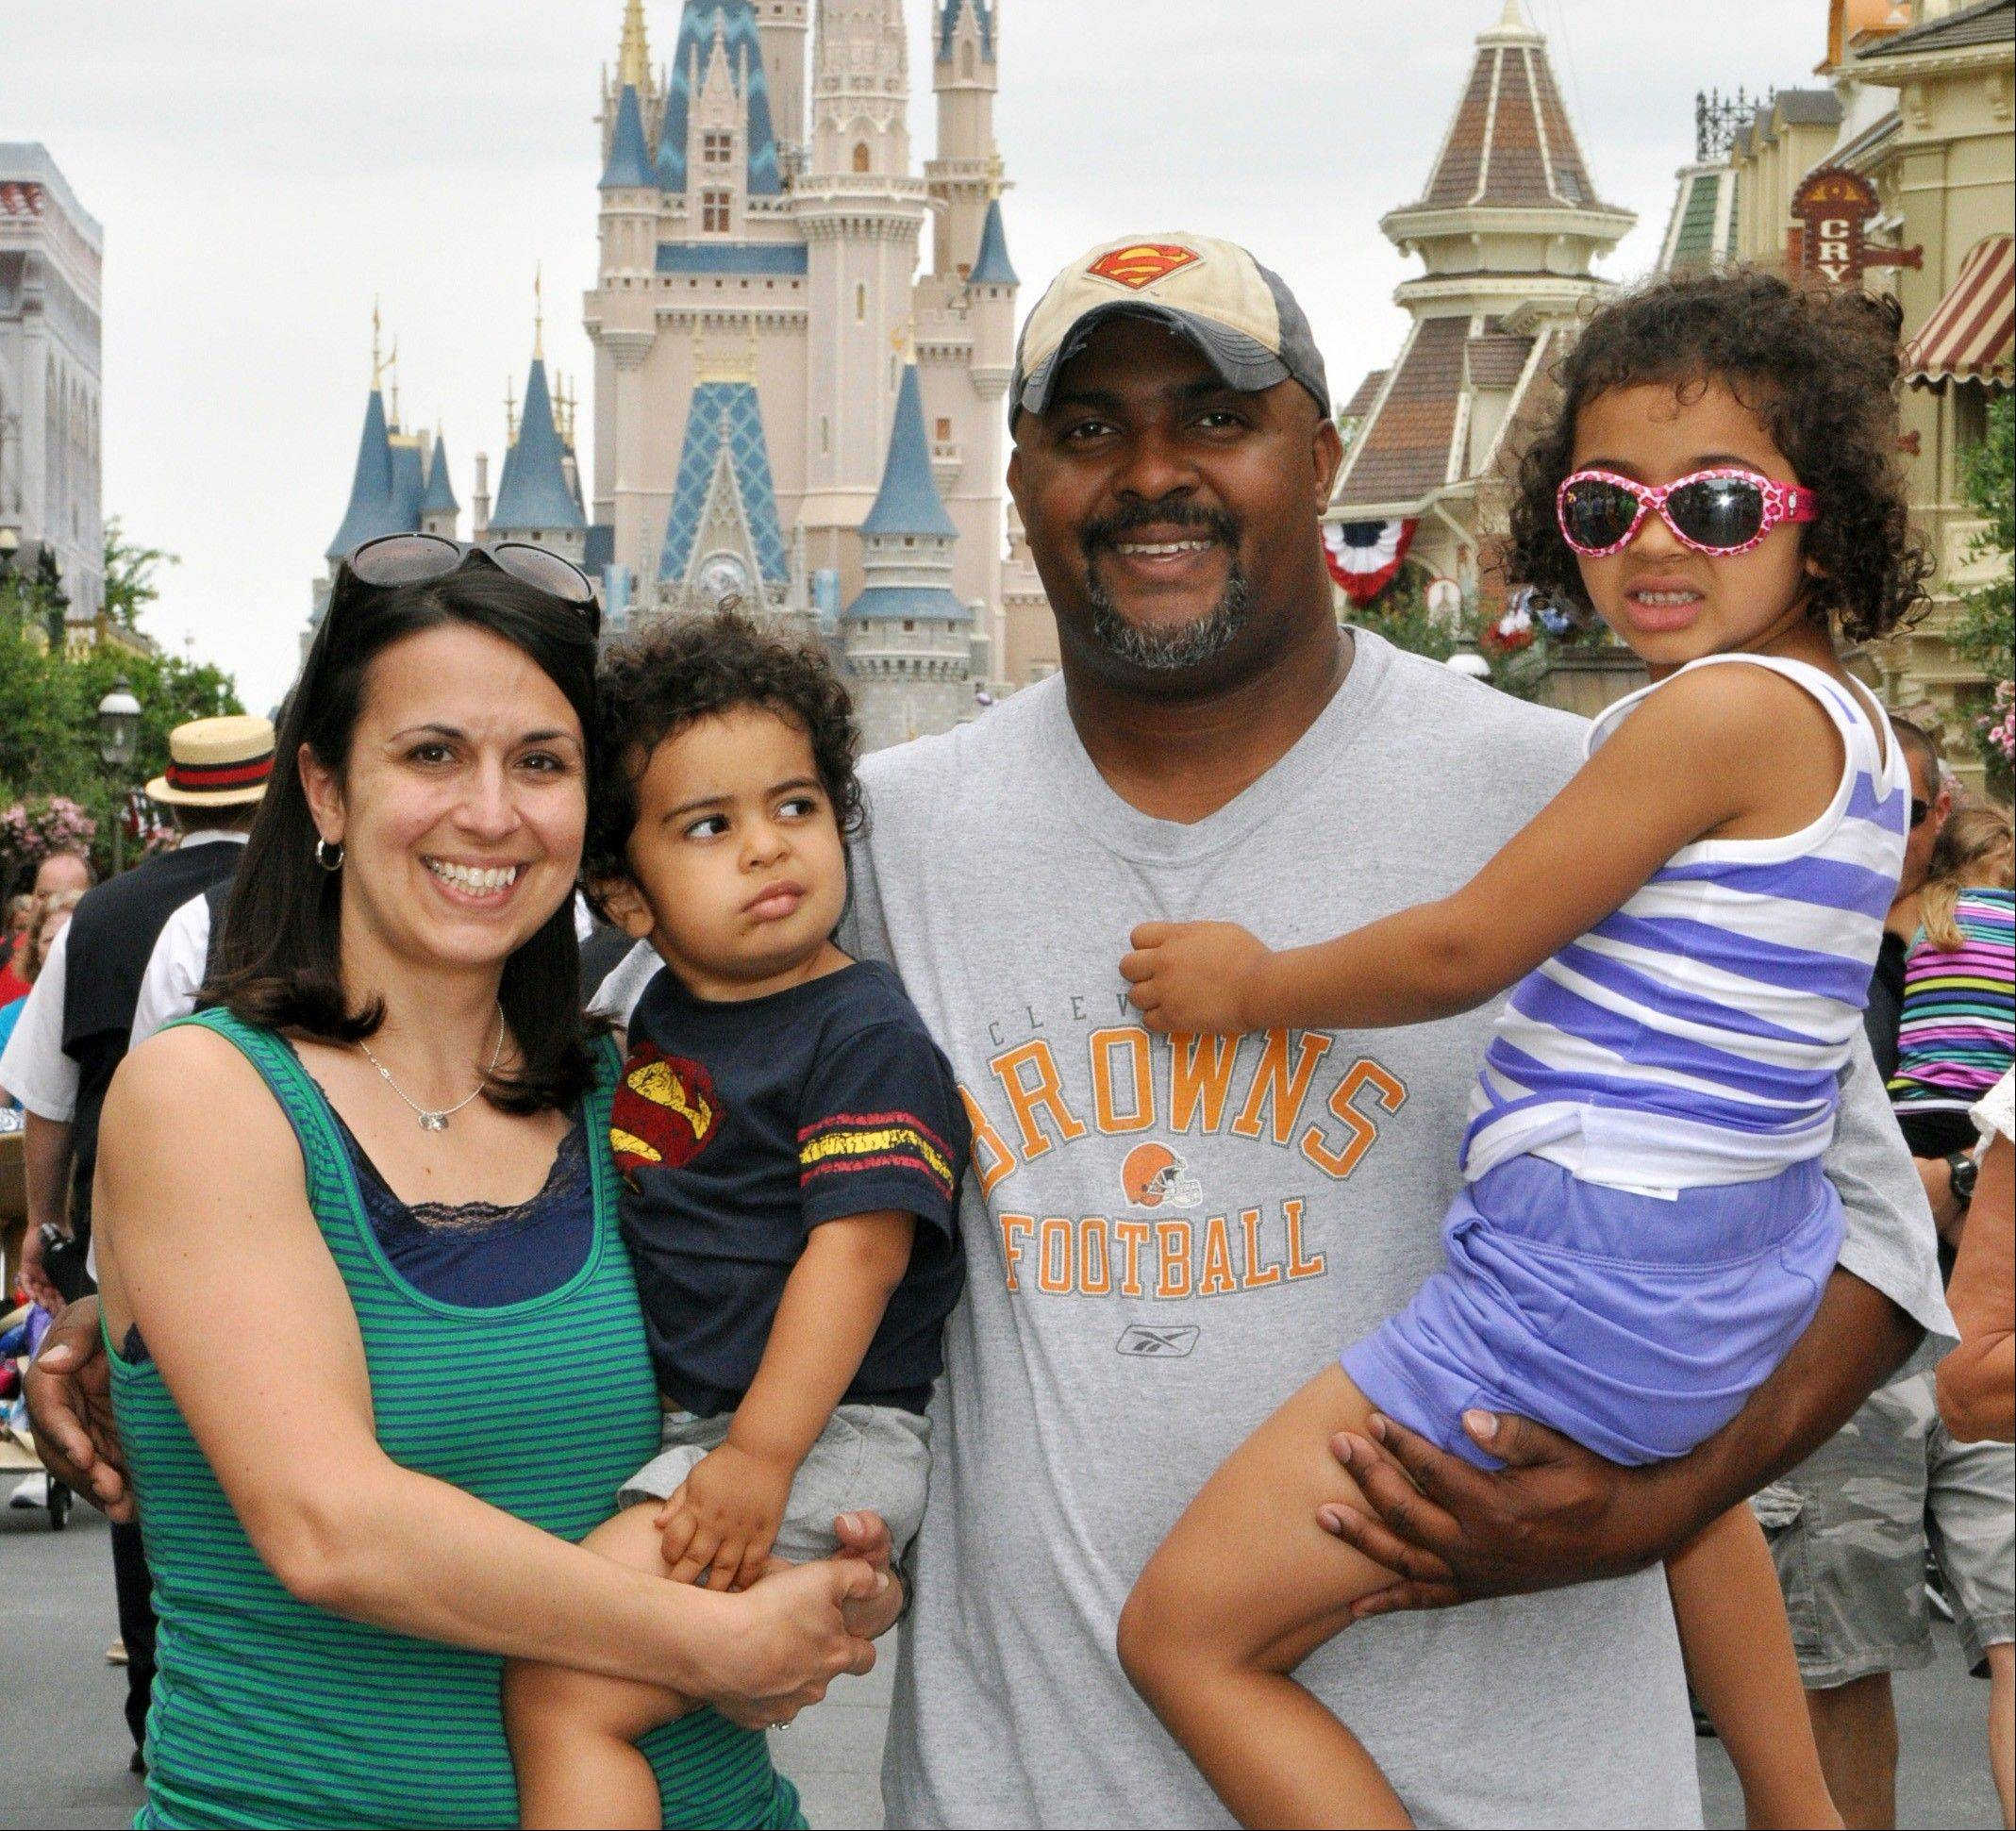 "Creed Anthony of Indianapolis spends time with his daughter Sophie, 5, son Isaac, 2, and wife Amal, on a visit to Disney World's Magic Kingdom in Lake Buena Vista, Fla. Anthony is an example of a new generation of hands-on dads who don't just change the occasional diaper but who view ""parenting as a partnership,"" as he put it."